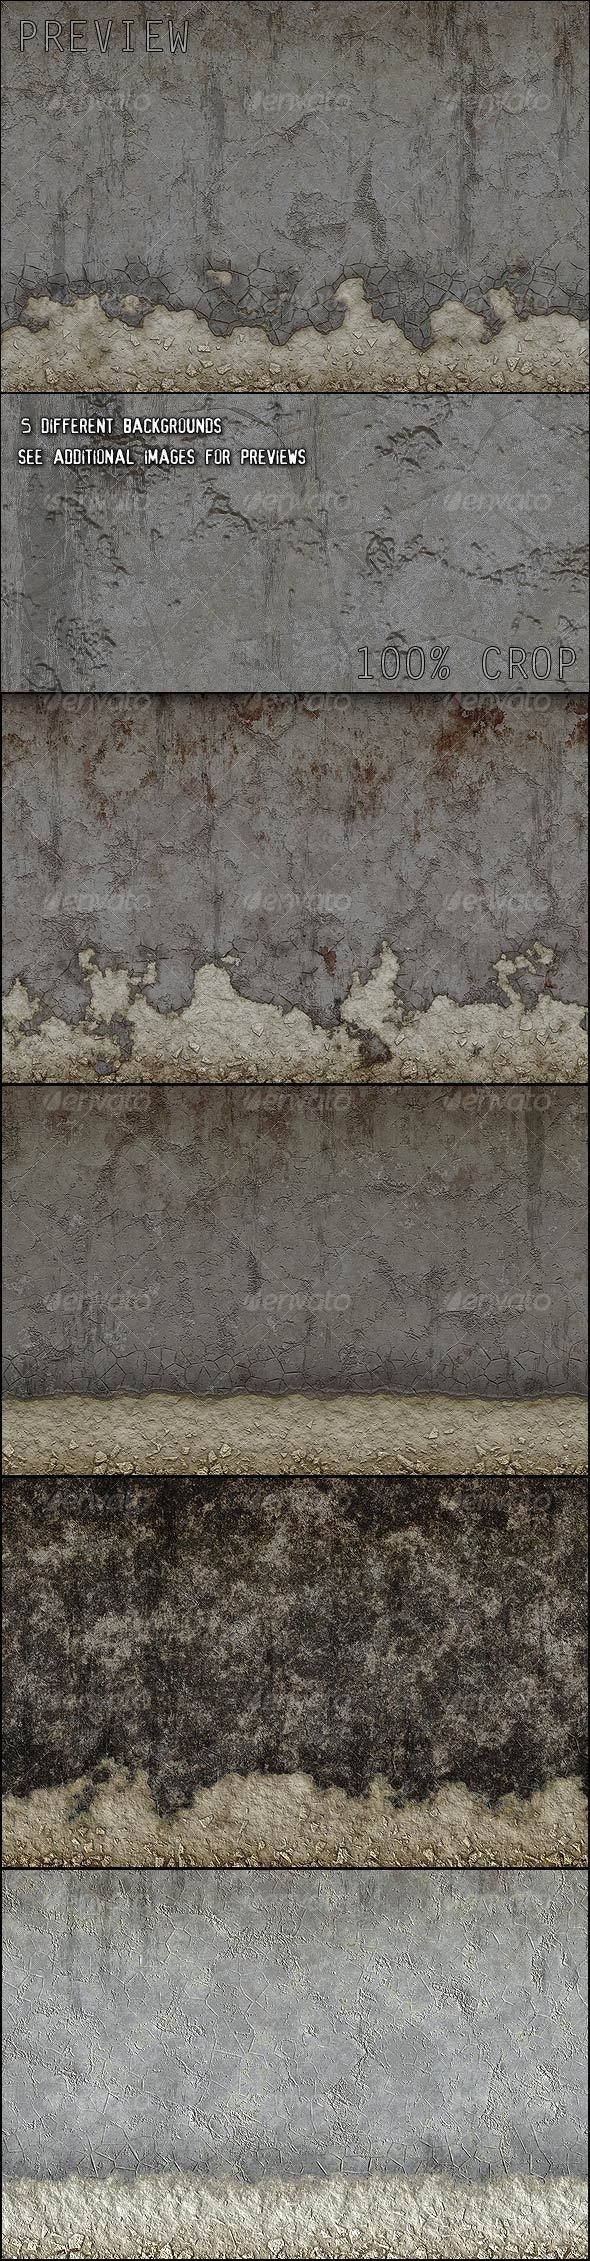 Grunge Walls Backgrounds - Backgrounds Graphics